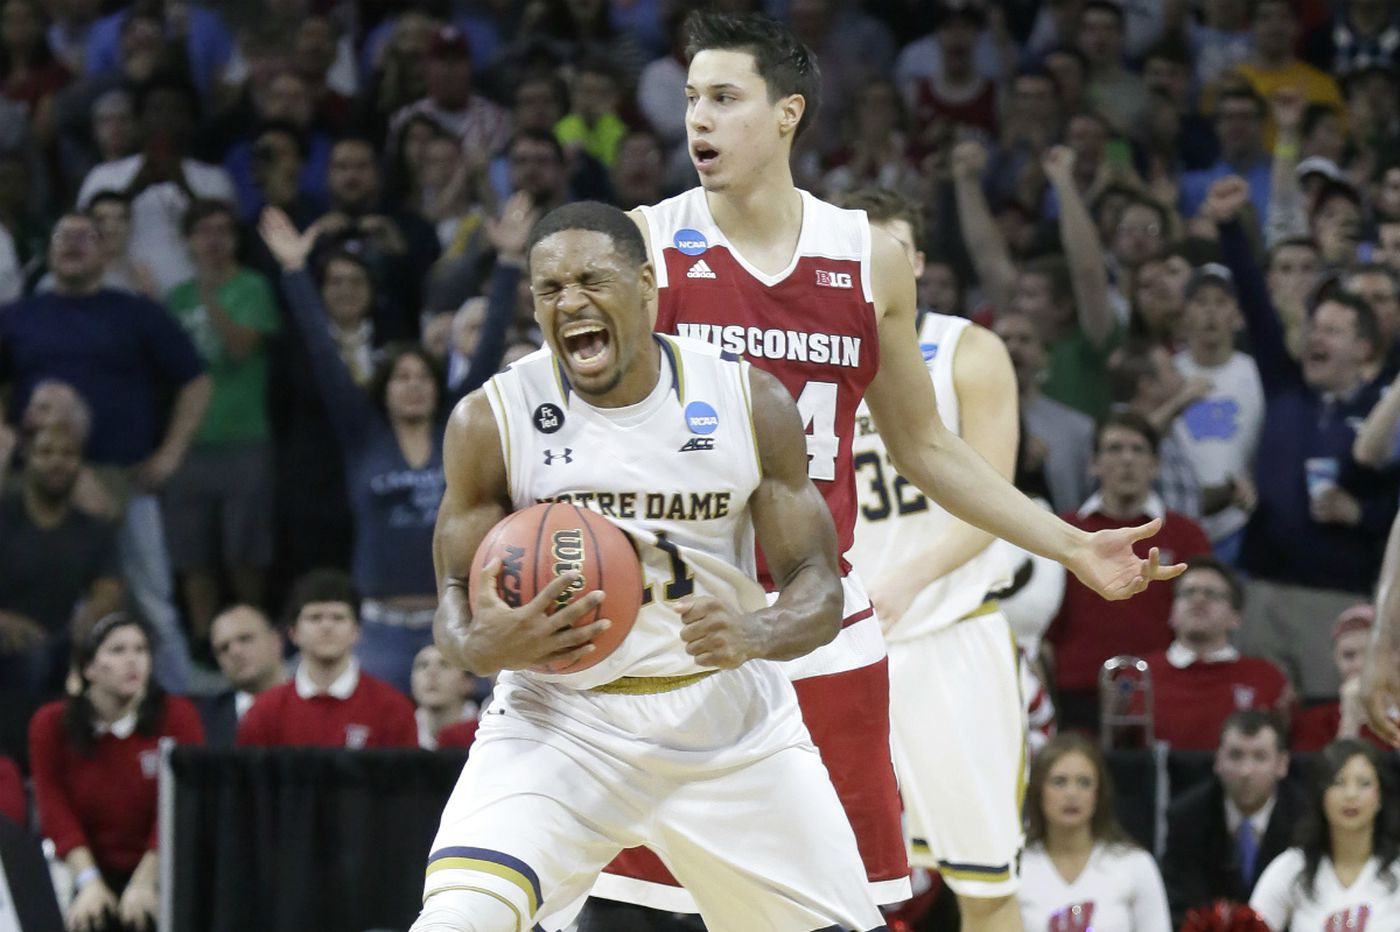 Sielski: Irish point guard could be a fit for Sixers